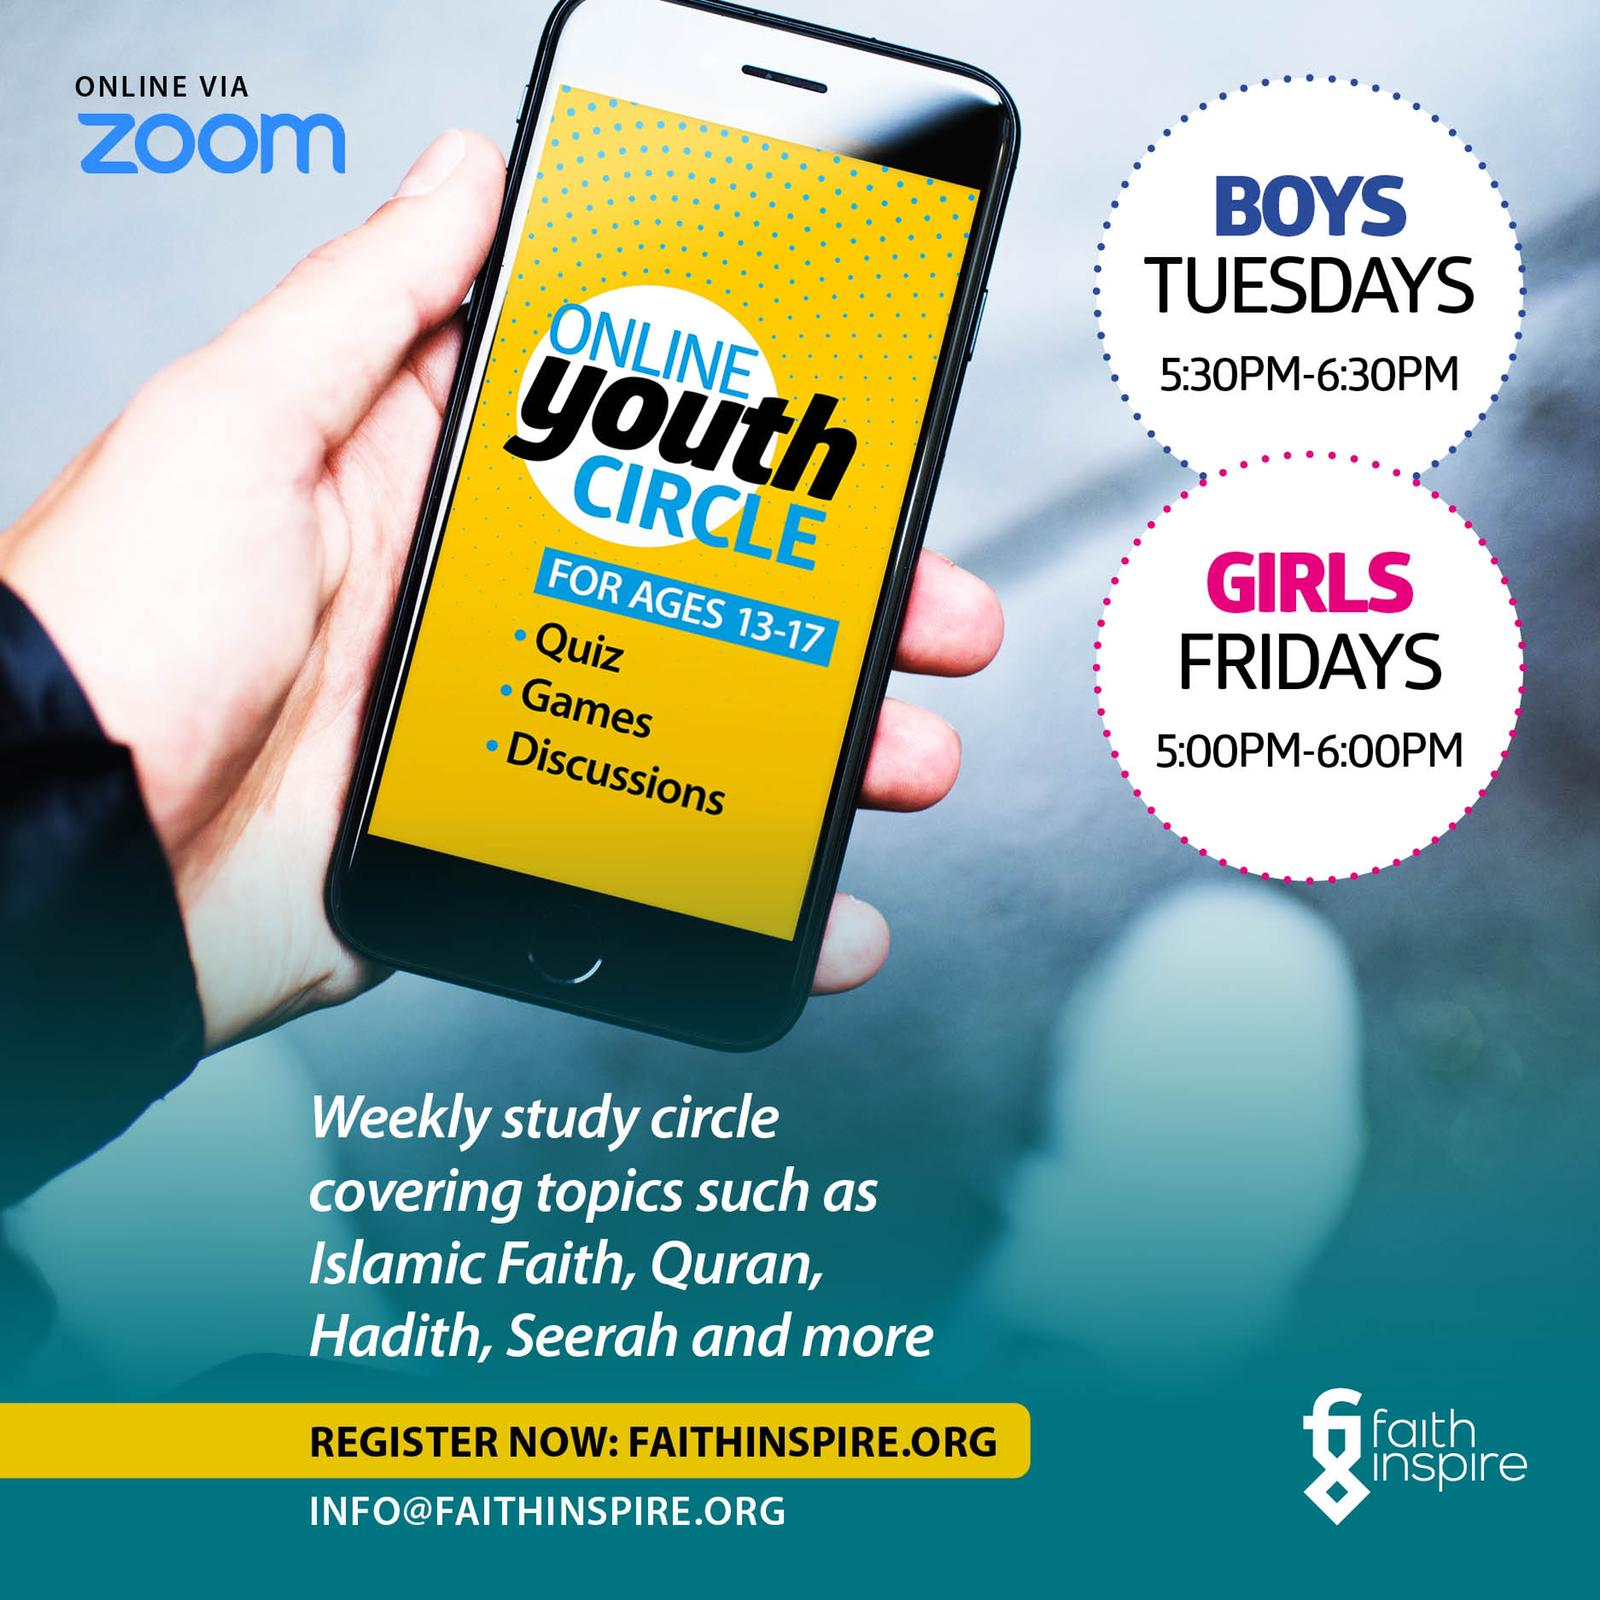 Online-youth-circle